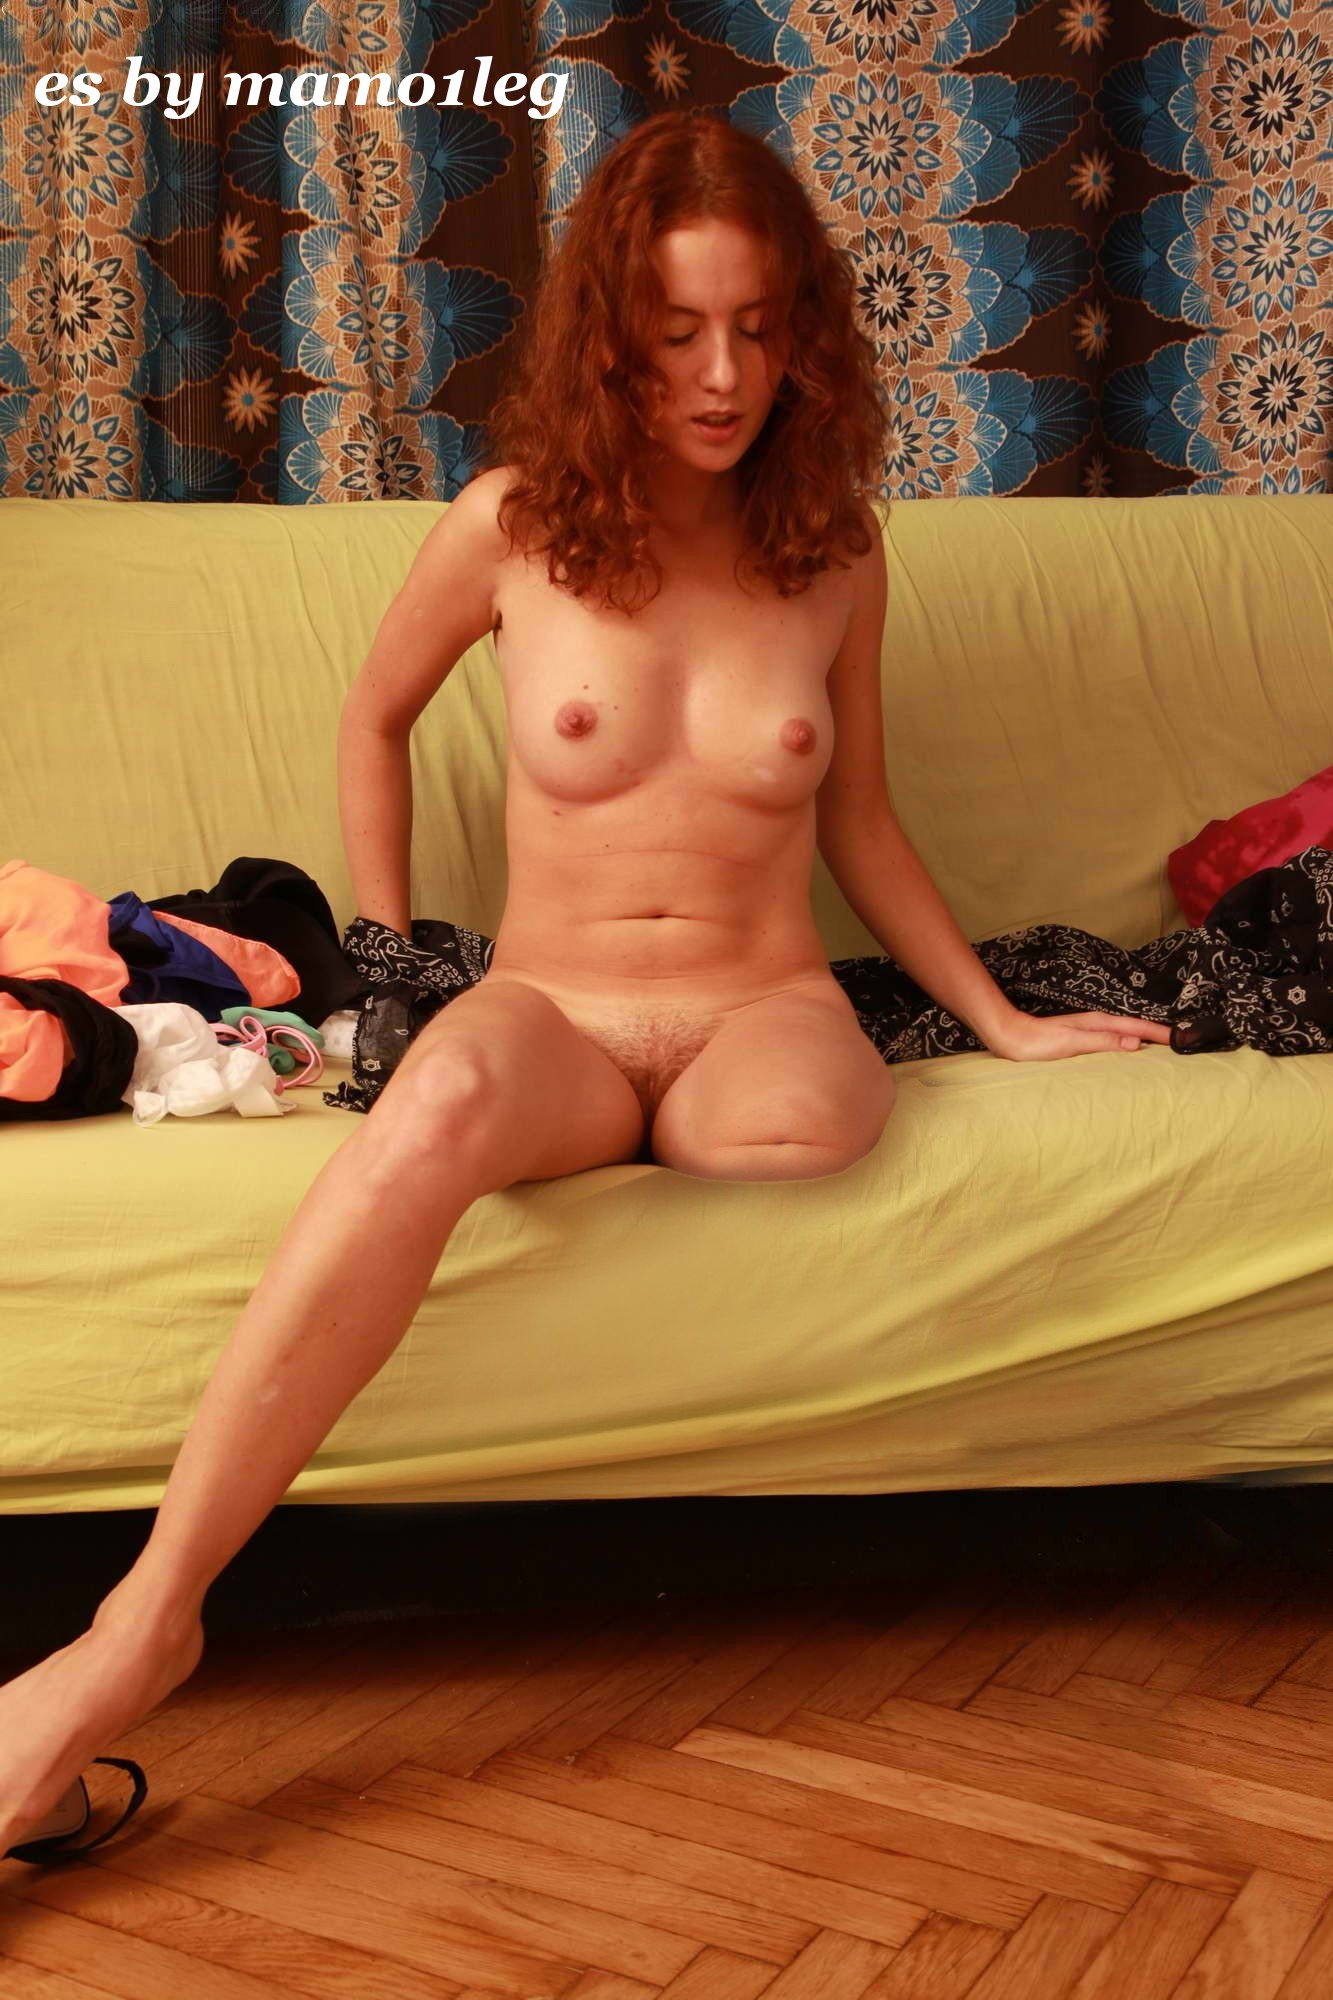 Auburn haired milf shows off her already we dessert